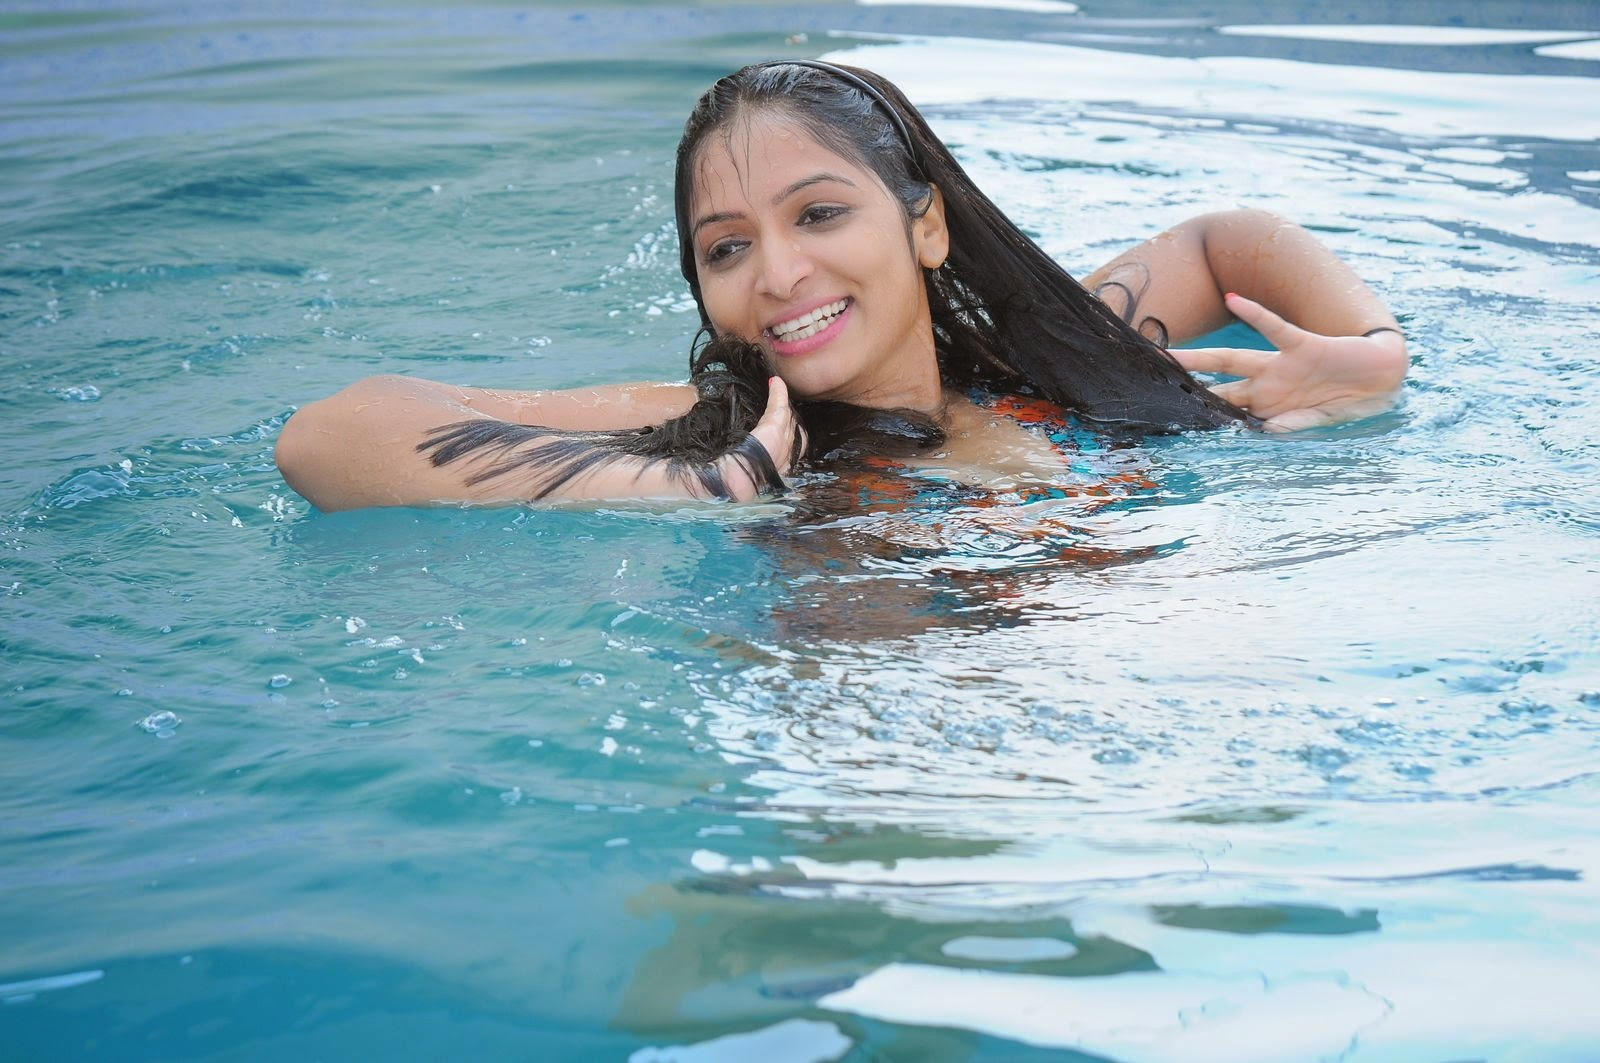 Swimming Pool Movie Photos Gallery Indian Girls Villa Celebs Beauty Fashion And Entertainment